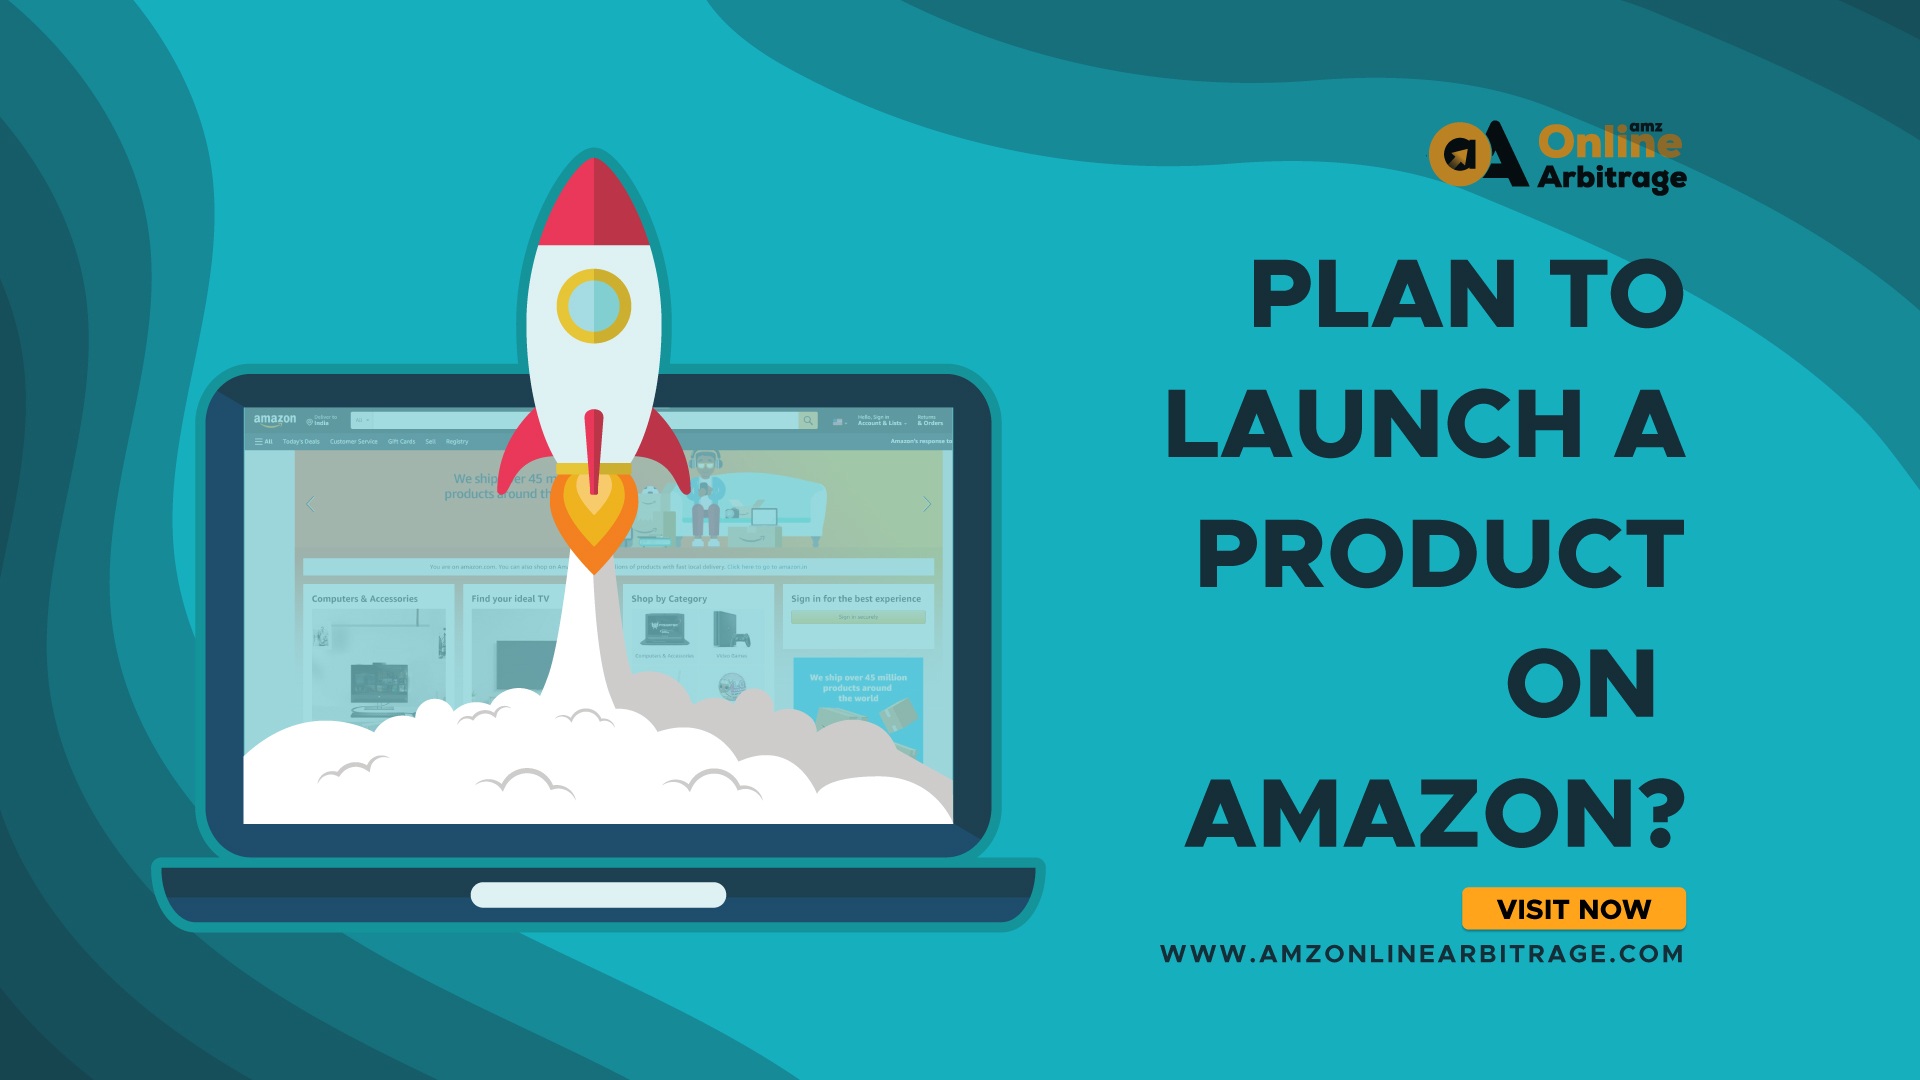 PLAN TO LAUNCH A PRODUCT ON AMAZON?